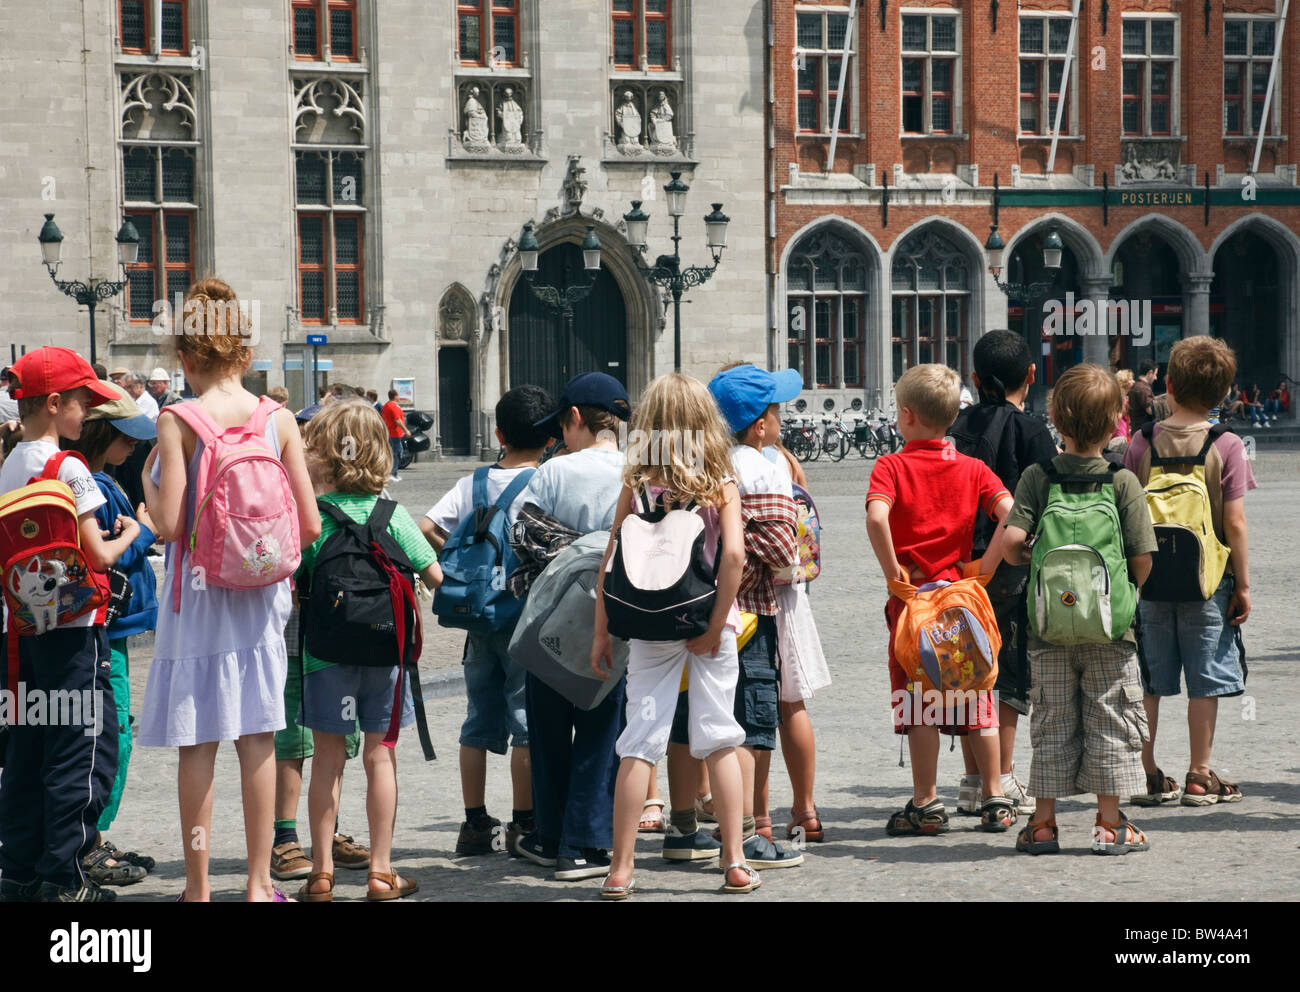 Markt, Bruges, Belgium, Europe. Group of children wearing rucksacks on a school trip to the historic city square - Stock Image